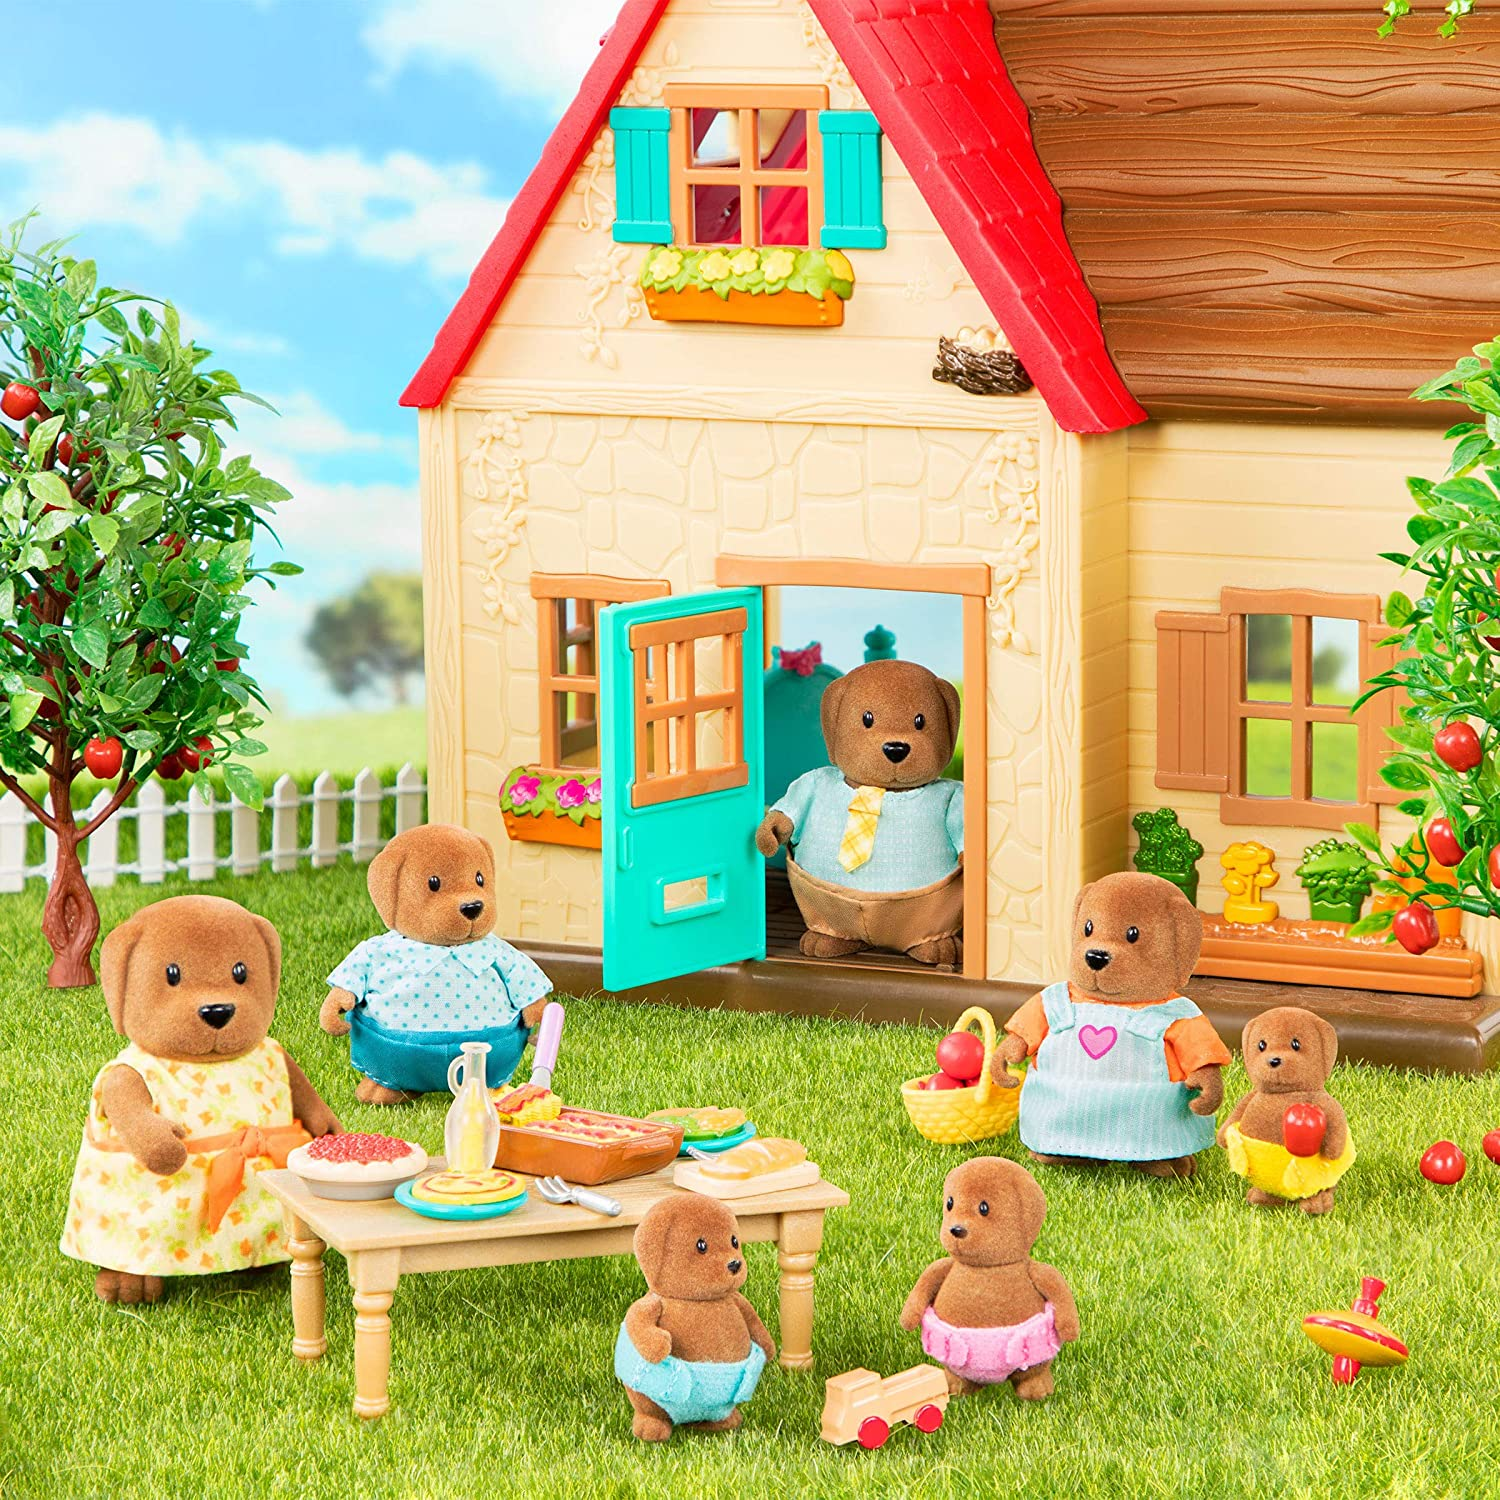 7pc Set with Miniature Figurines Animal Toys and Accessories for Kids Age 3+ Lil Woodzeez WZ6577Z Large Grandparents Wagadoodle Dog Family